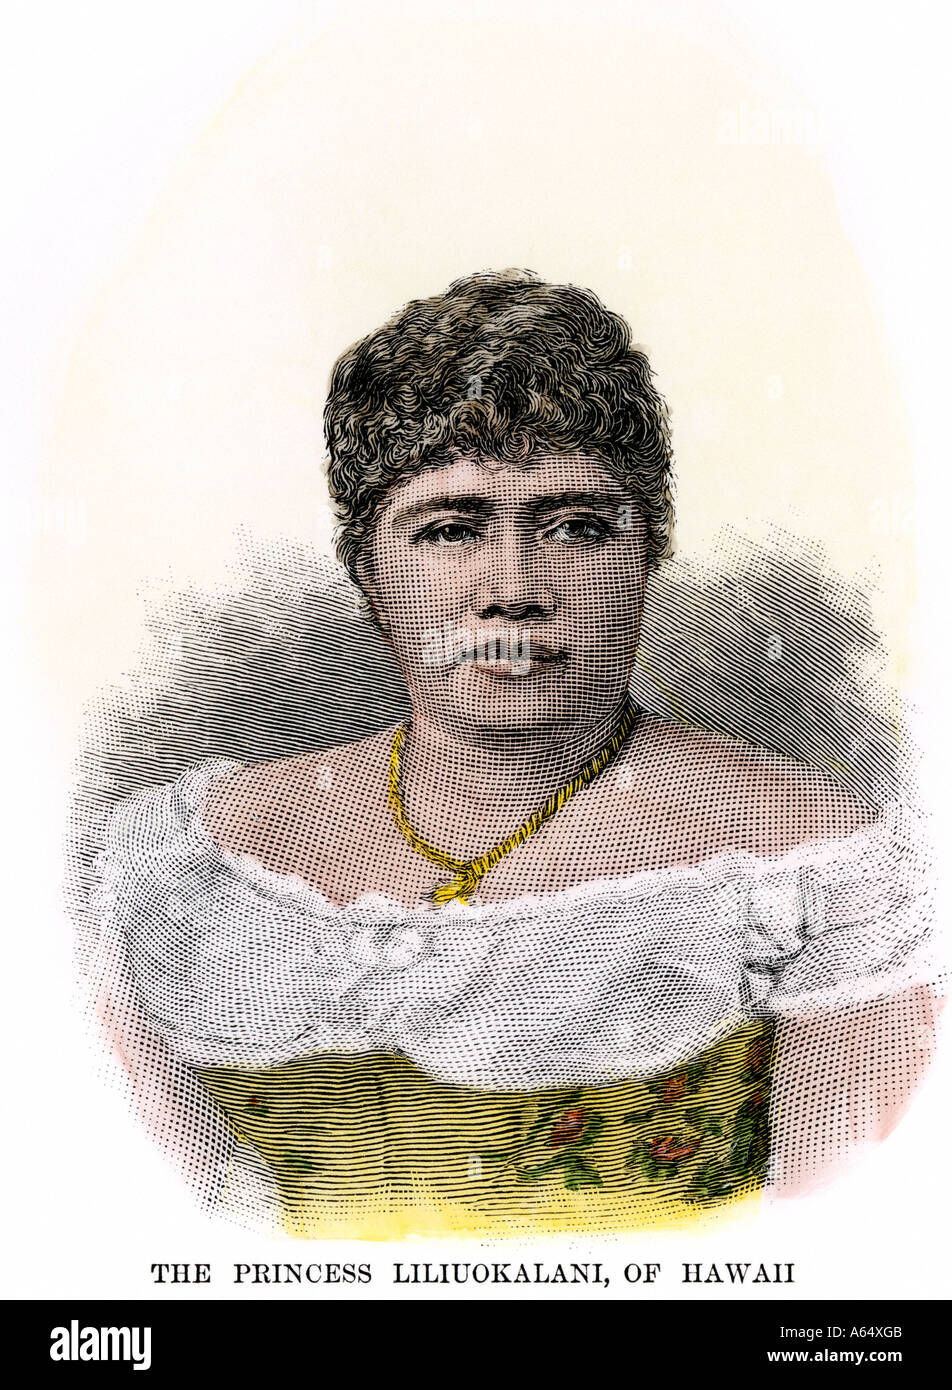 Queen Lilioukalani of Hawaii 1880s. Hand-colored woodcut - Stock Image